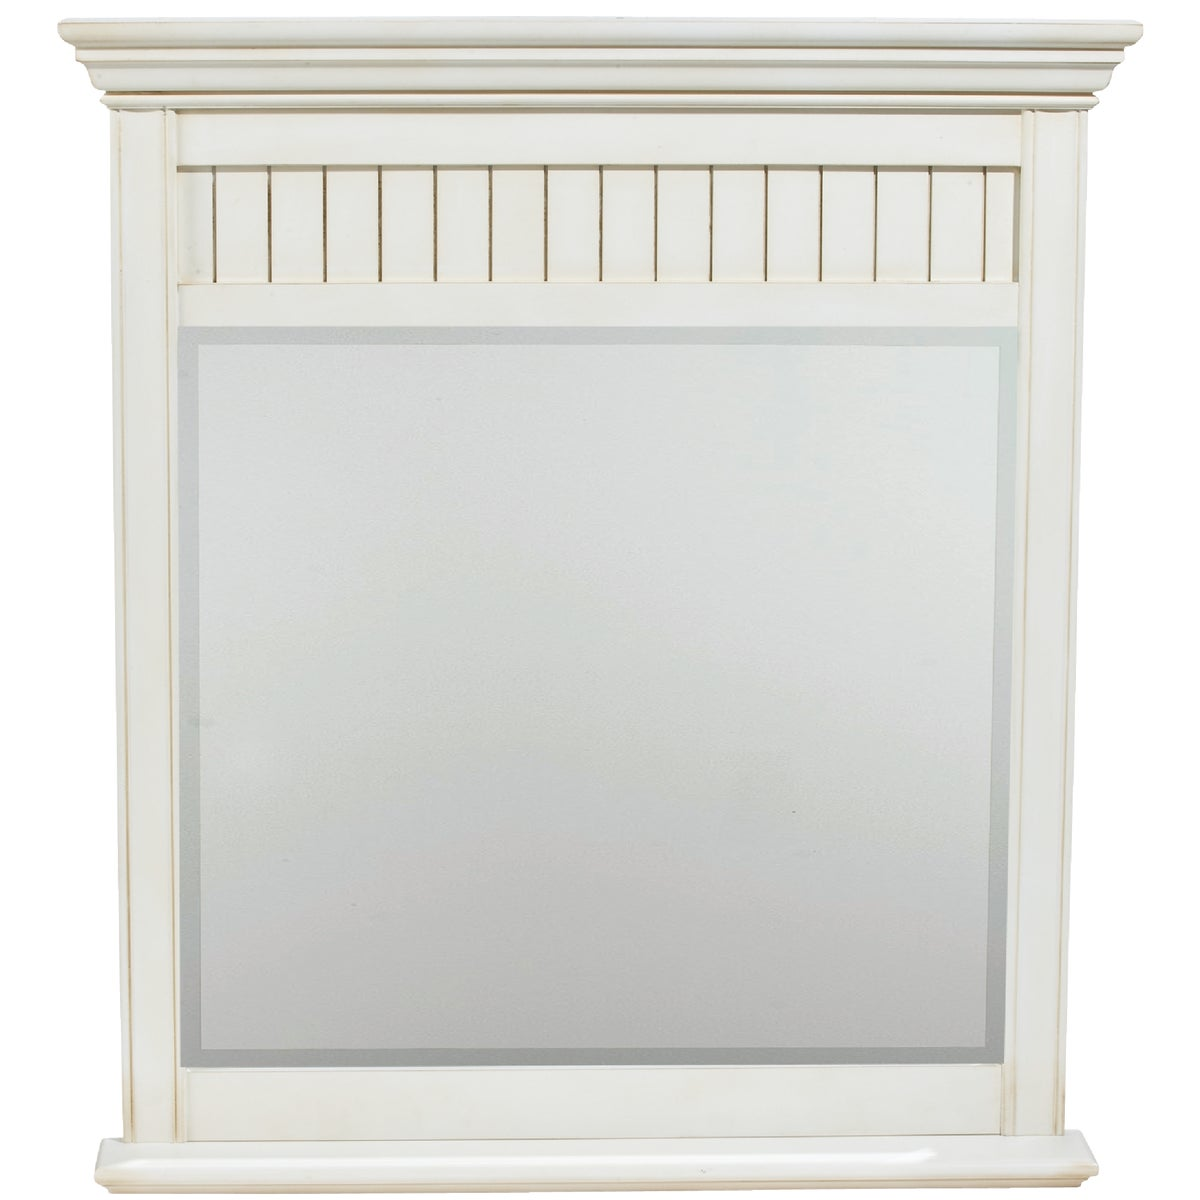 36X40 WH BSTL BCH MIRROR - BB3640MR by Sunnywood Products